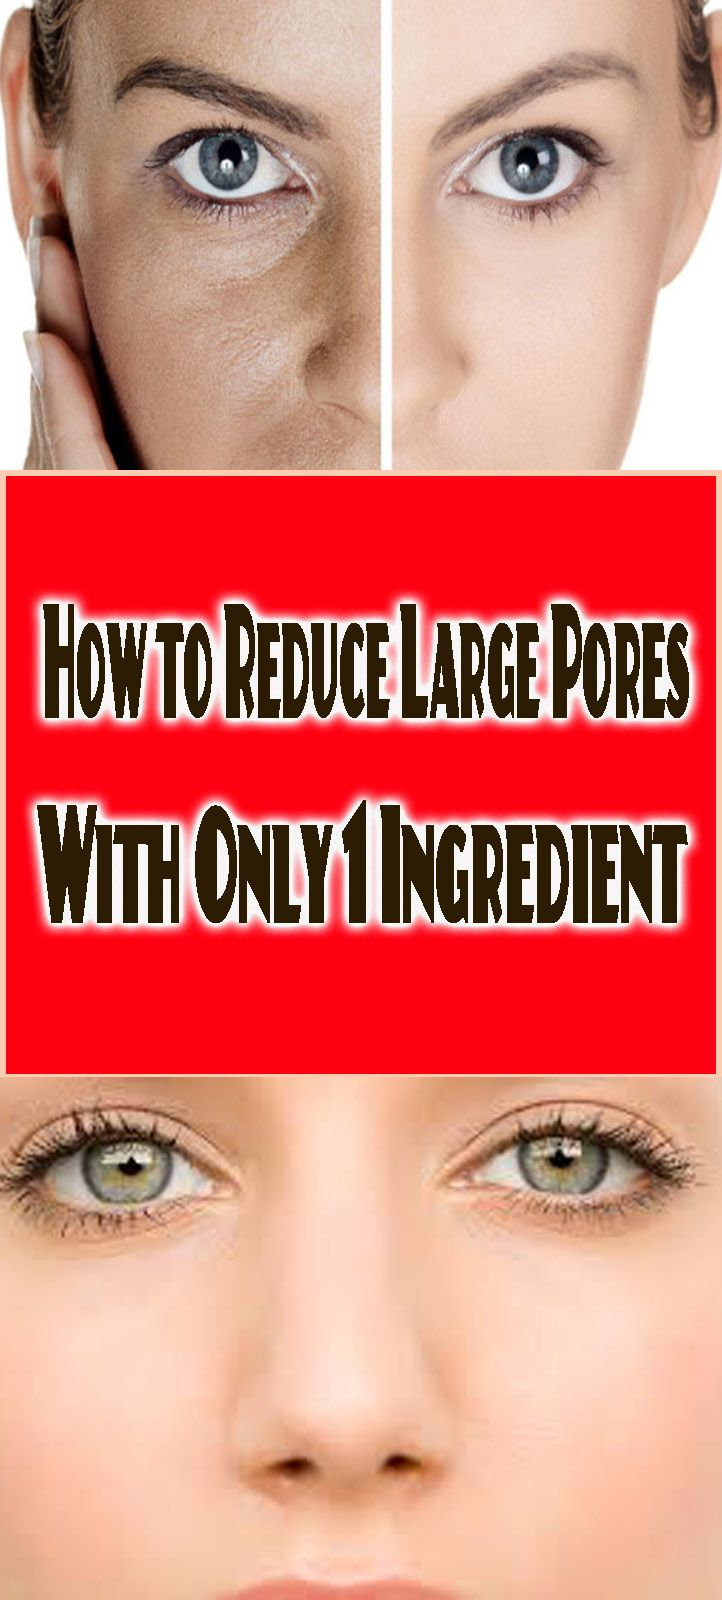 How to Reduce Large Pores With Only 1 Ingredient.